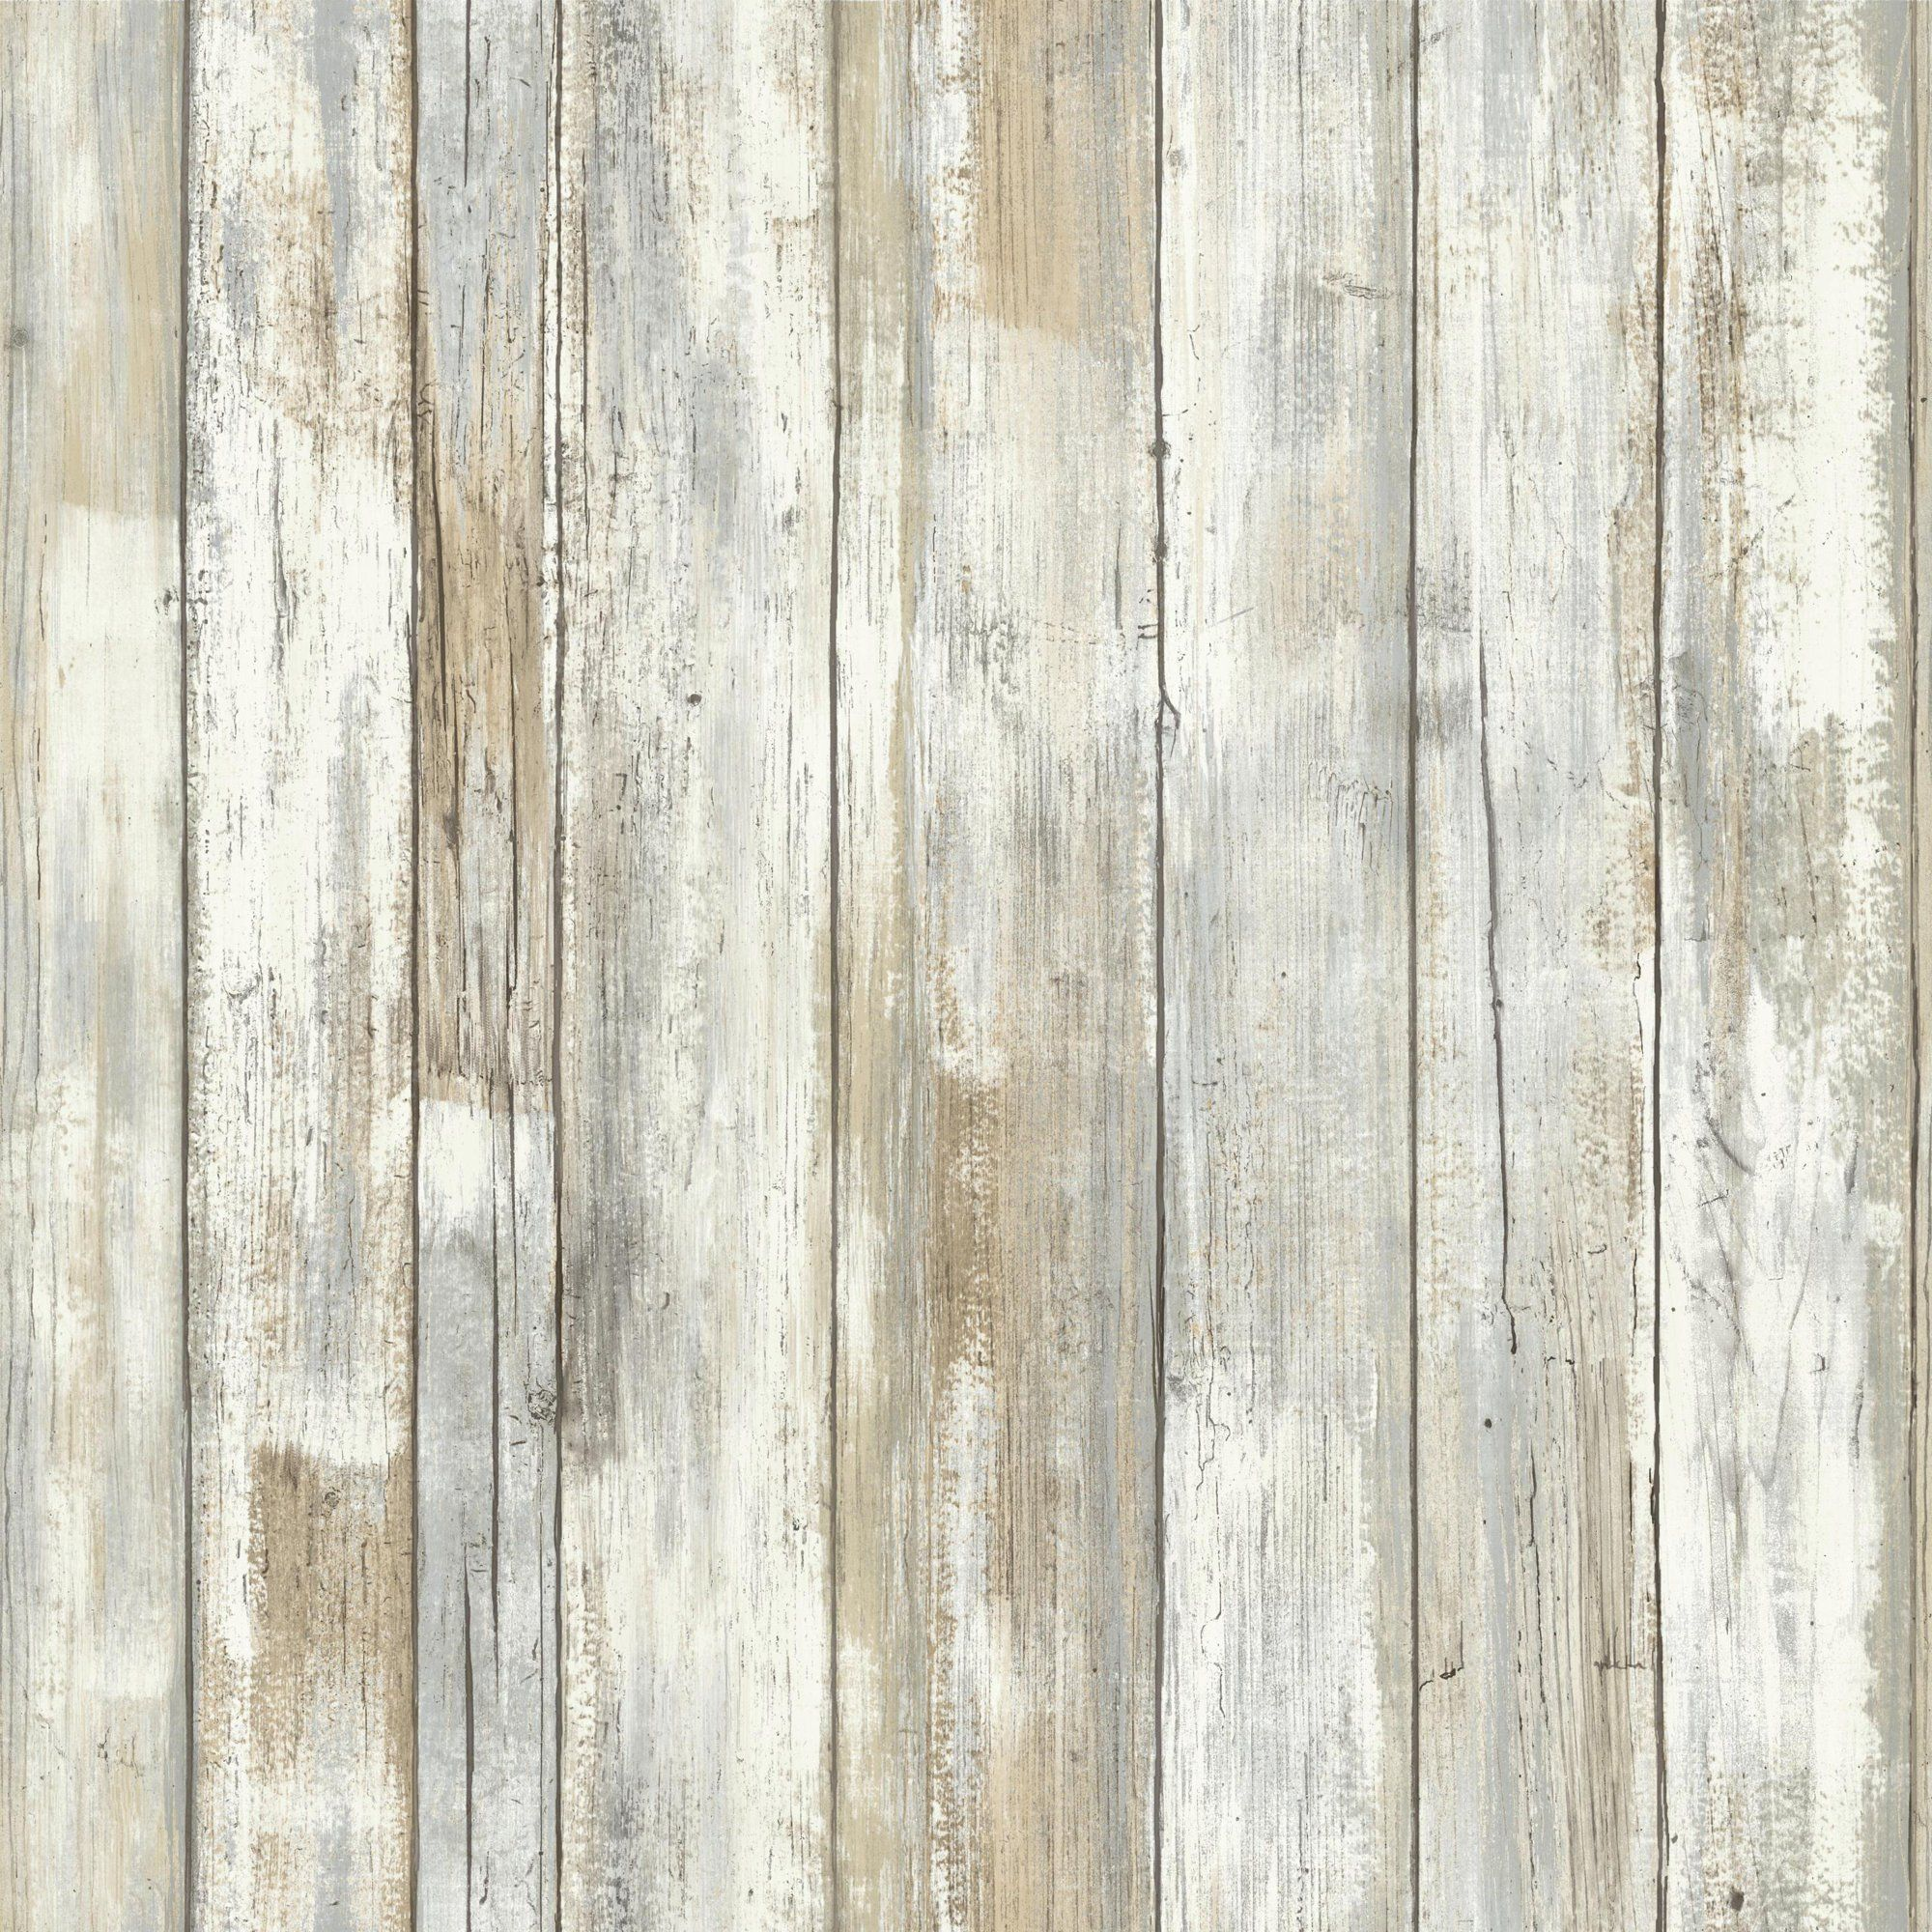 Roommates Distressed Wood Peel And Stick Wall Decor Wallpaper Walmart Com Distressed Wood Wallpaper How To Distress Wood Wood Wallpaper